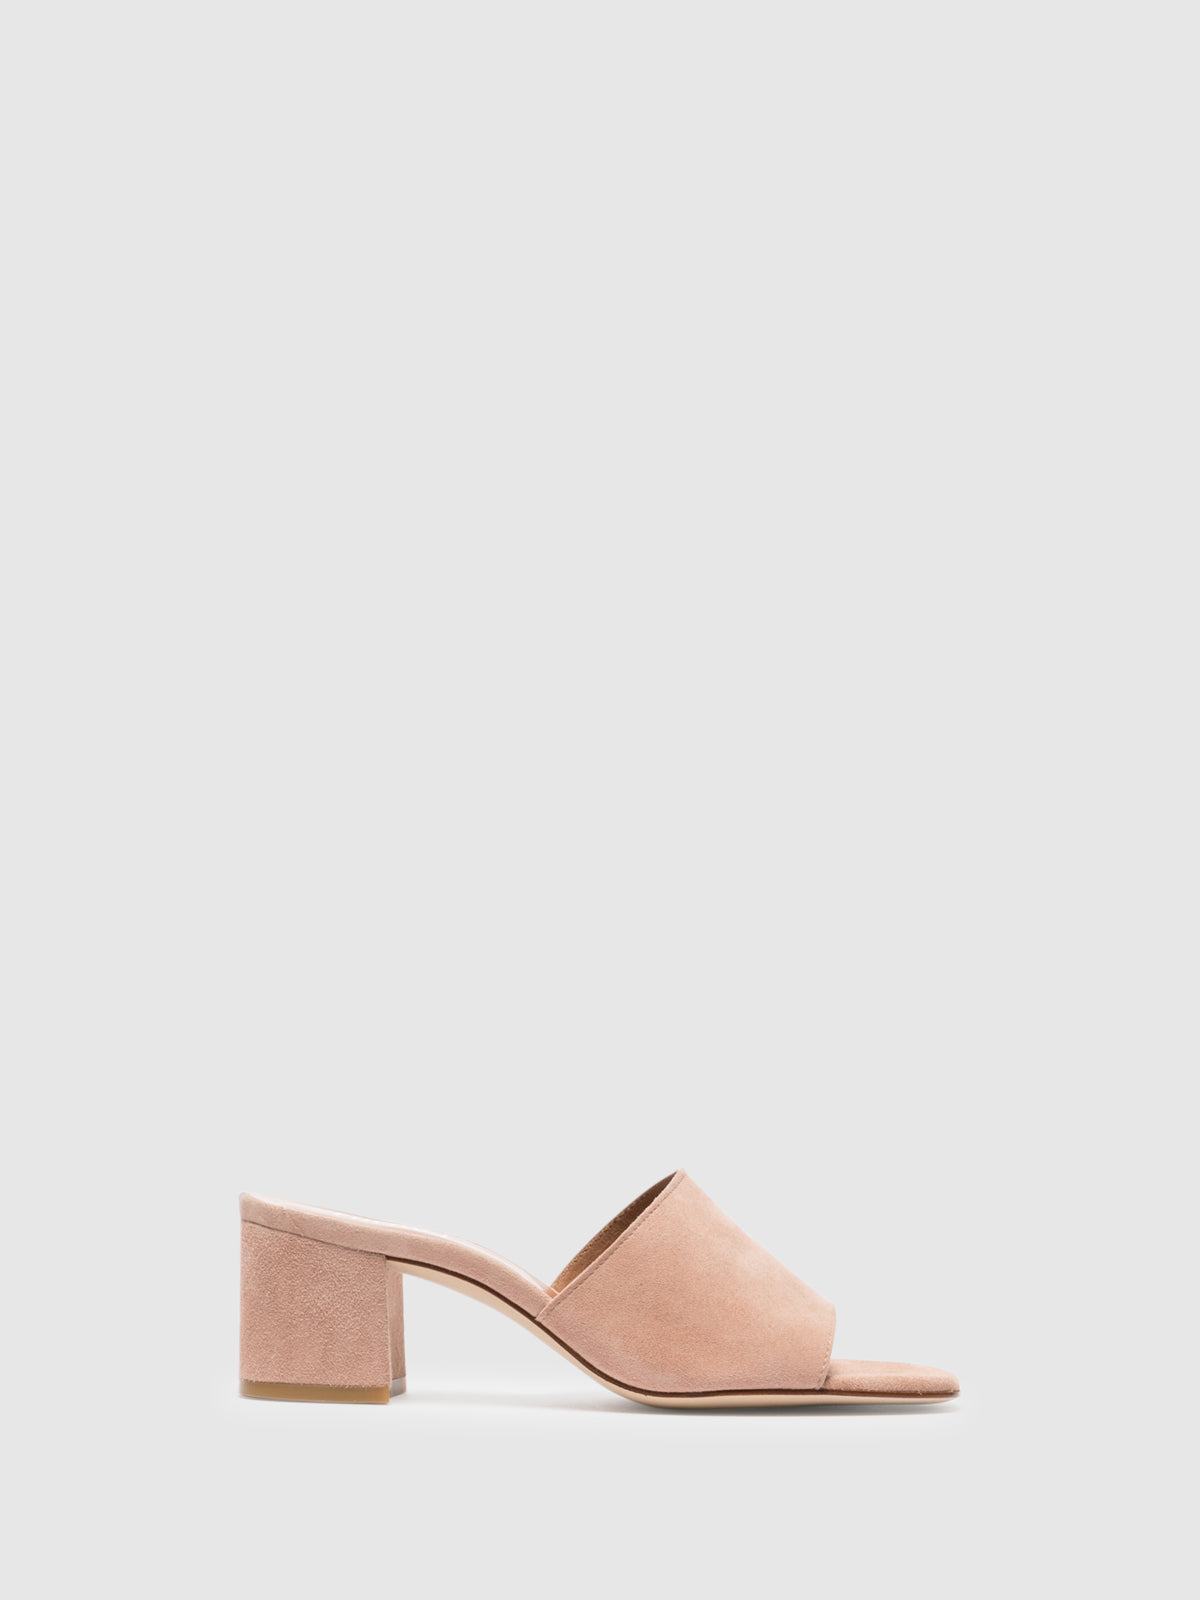 Foreva Pink Open Toe Mules